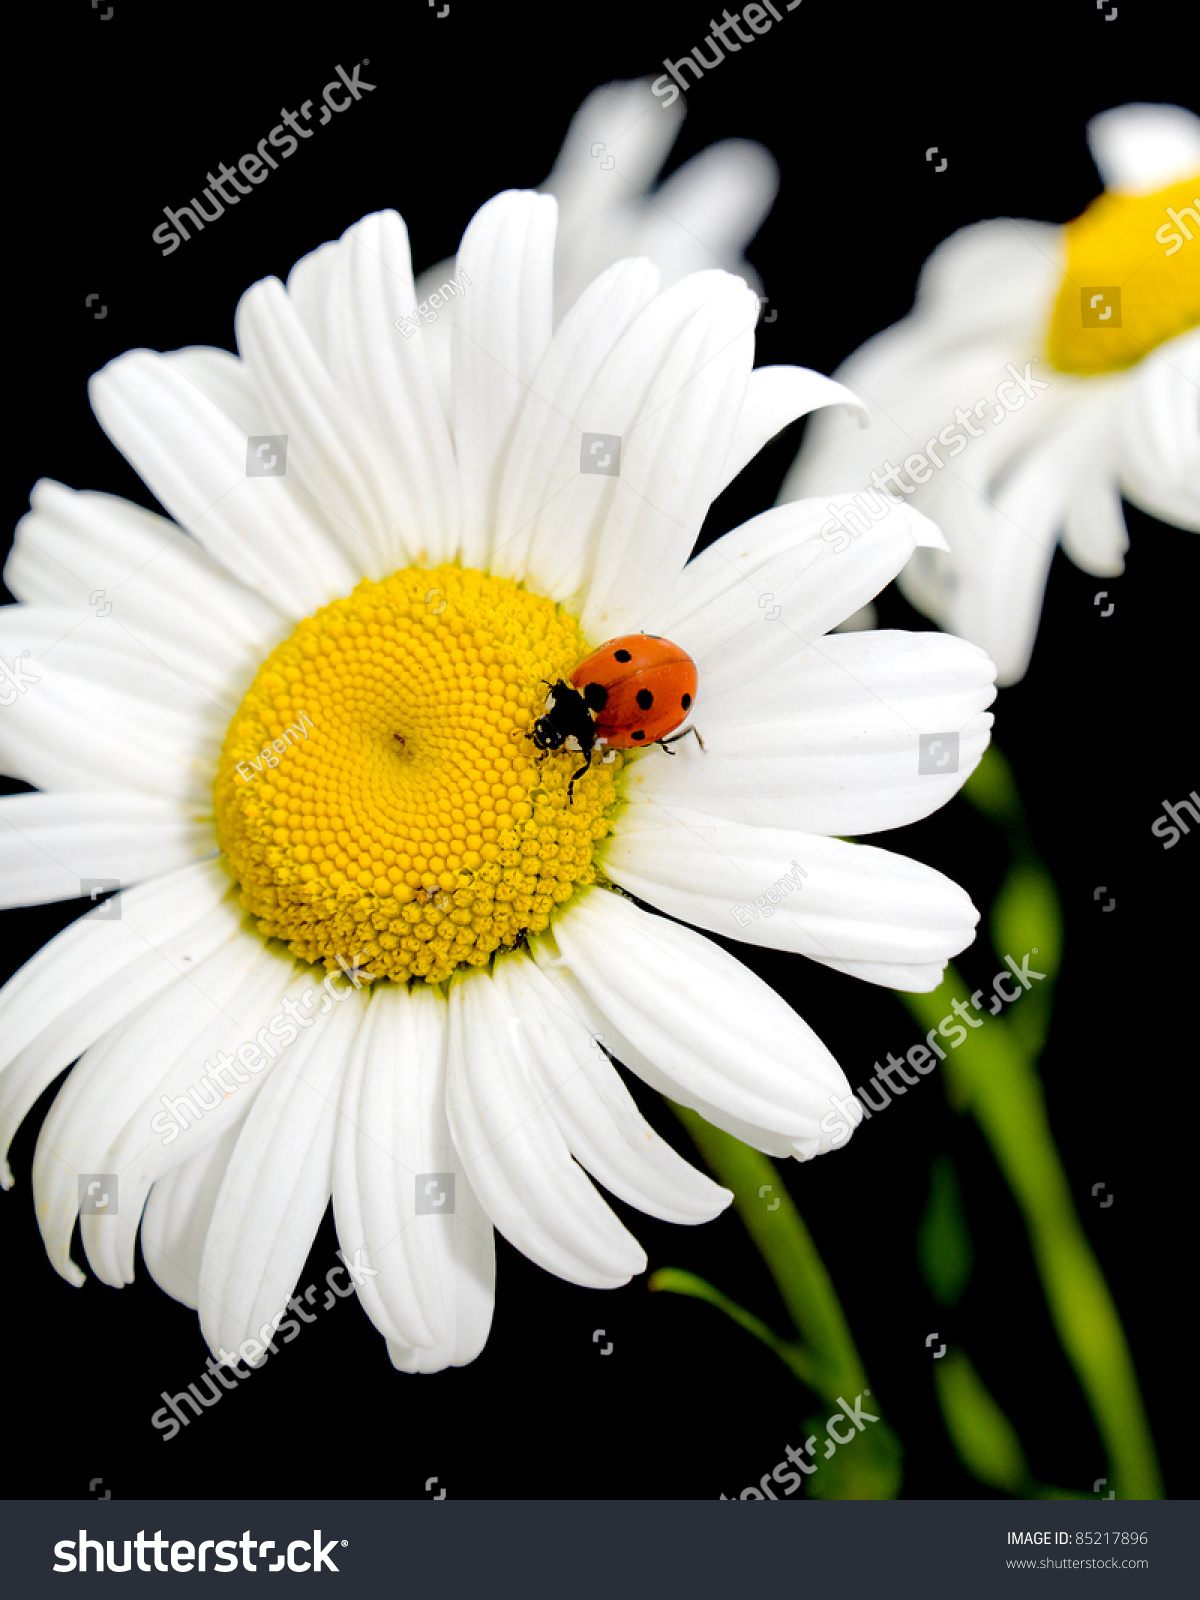 Ladybug sits on flower daisies on stock photo edit now 85217896 ladybug sits on a flower daisies on black background izmirmasajfo